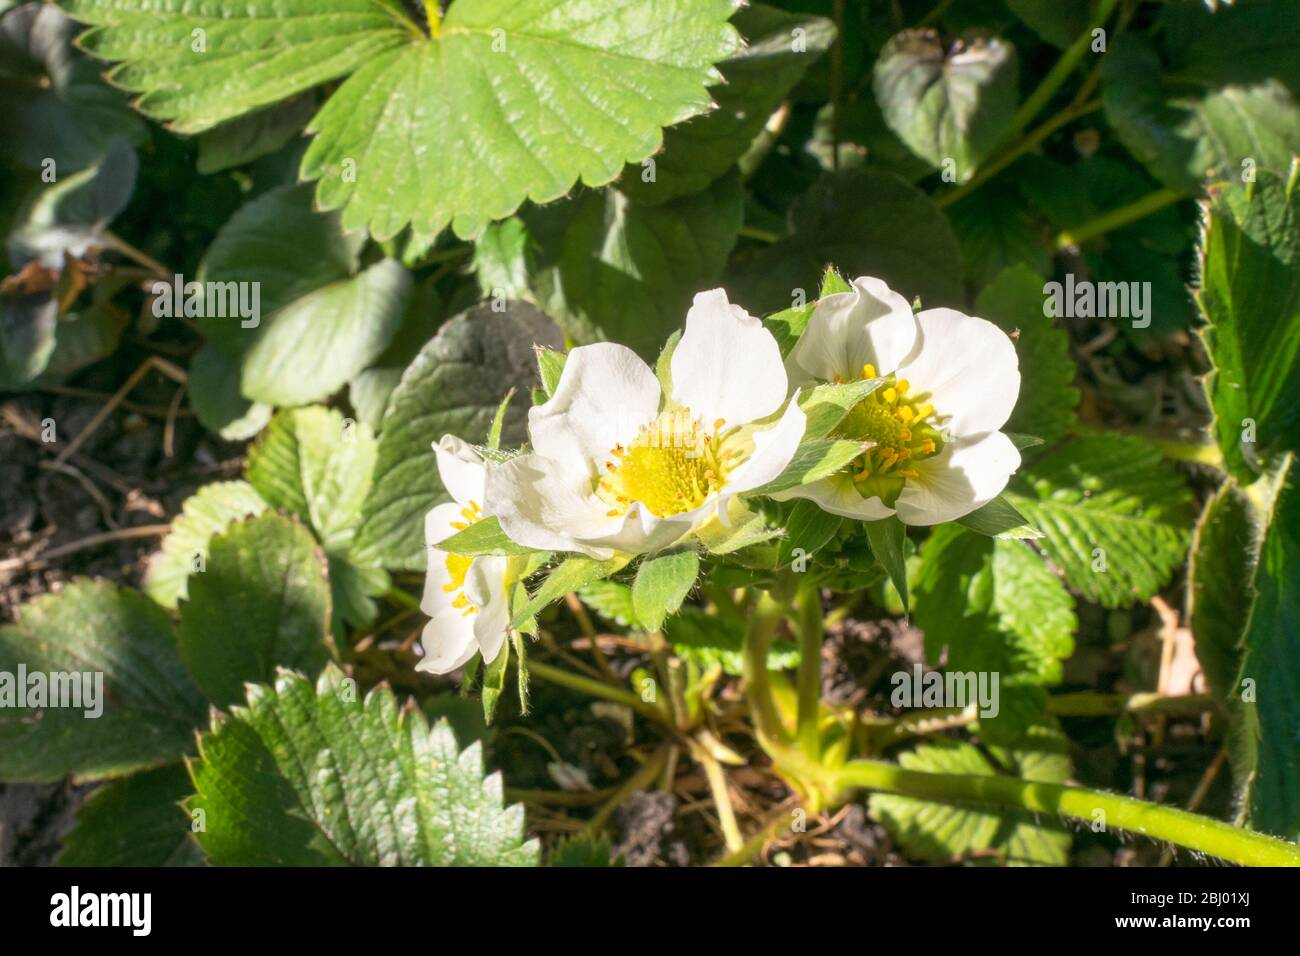 Detailed image of the flowers of a strawberry plant (Fragaria × ananassa) Stock Photo